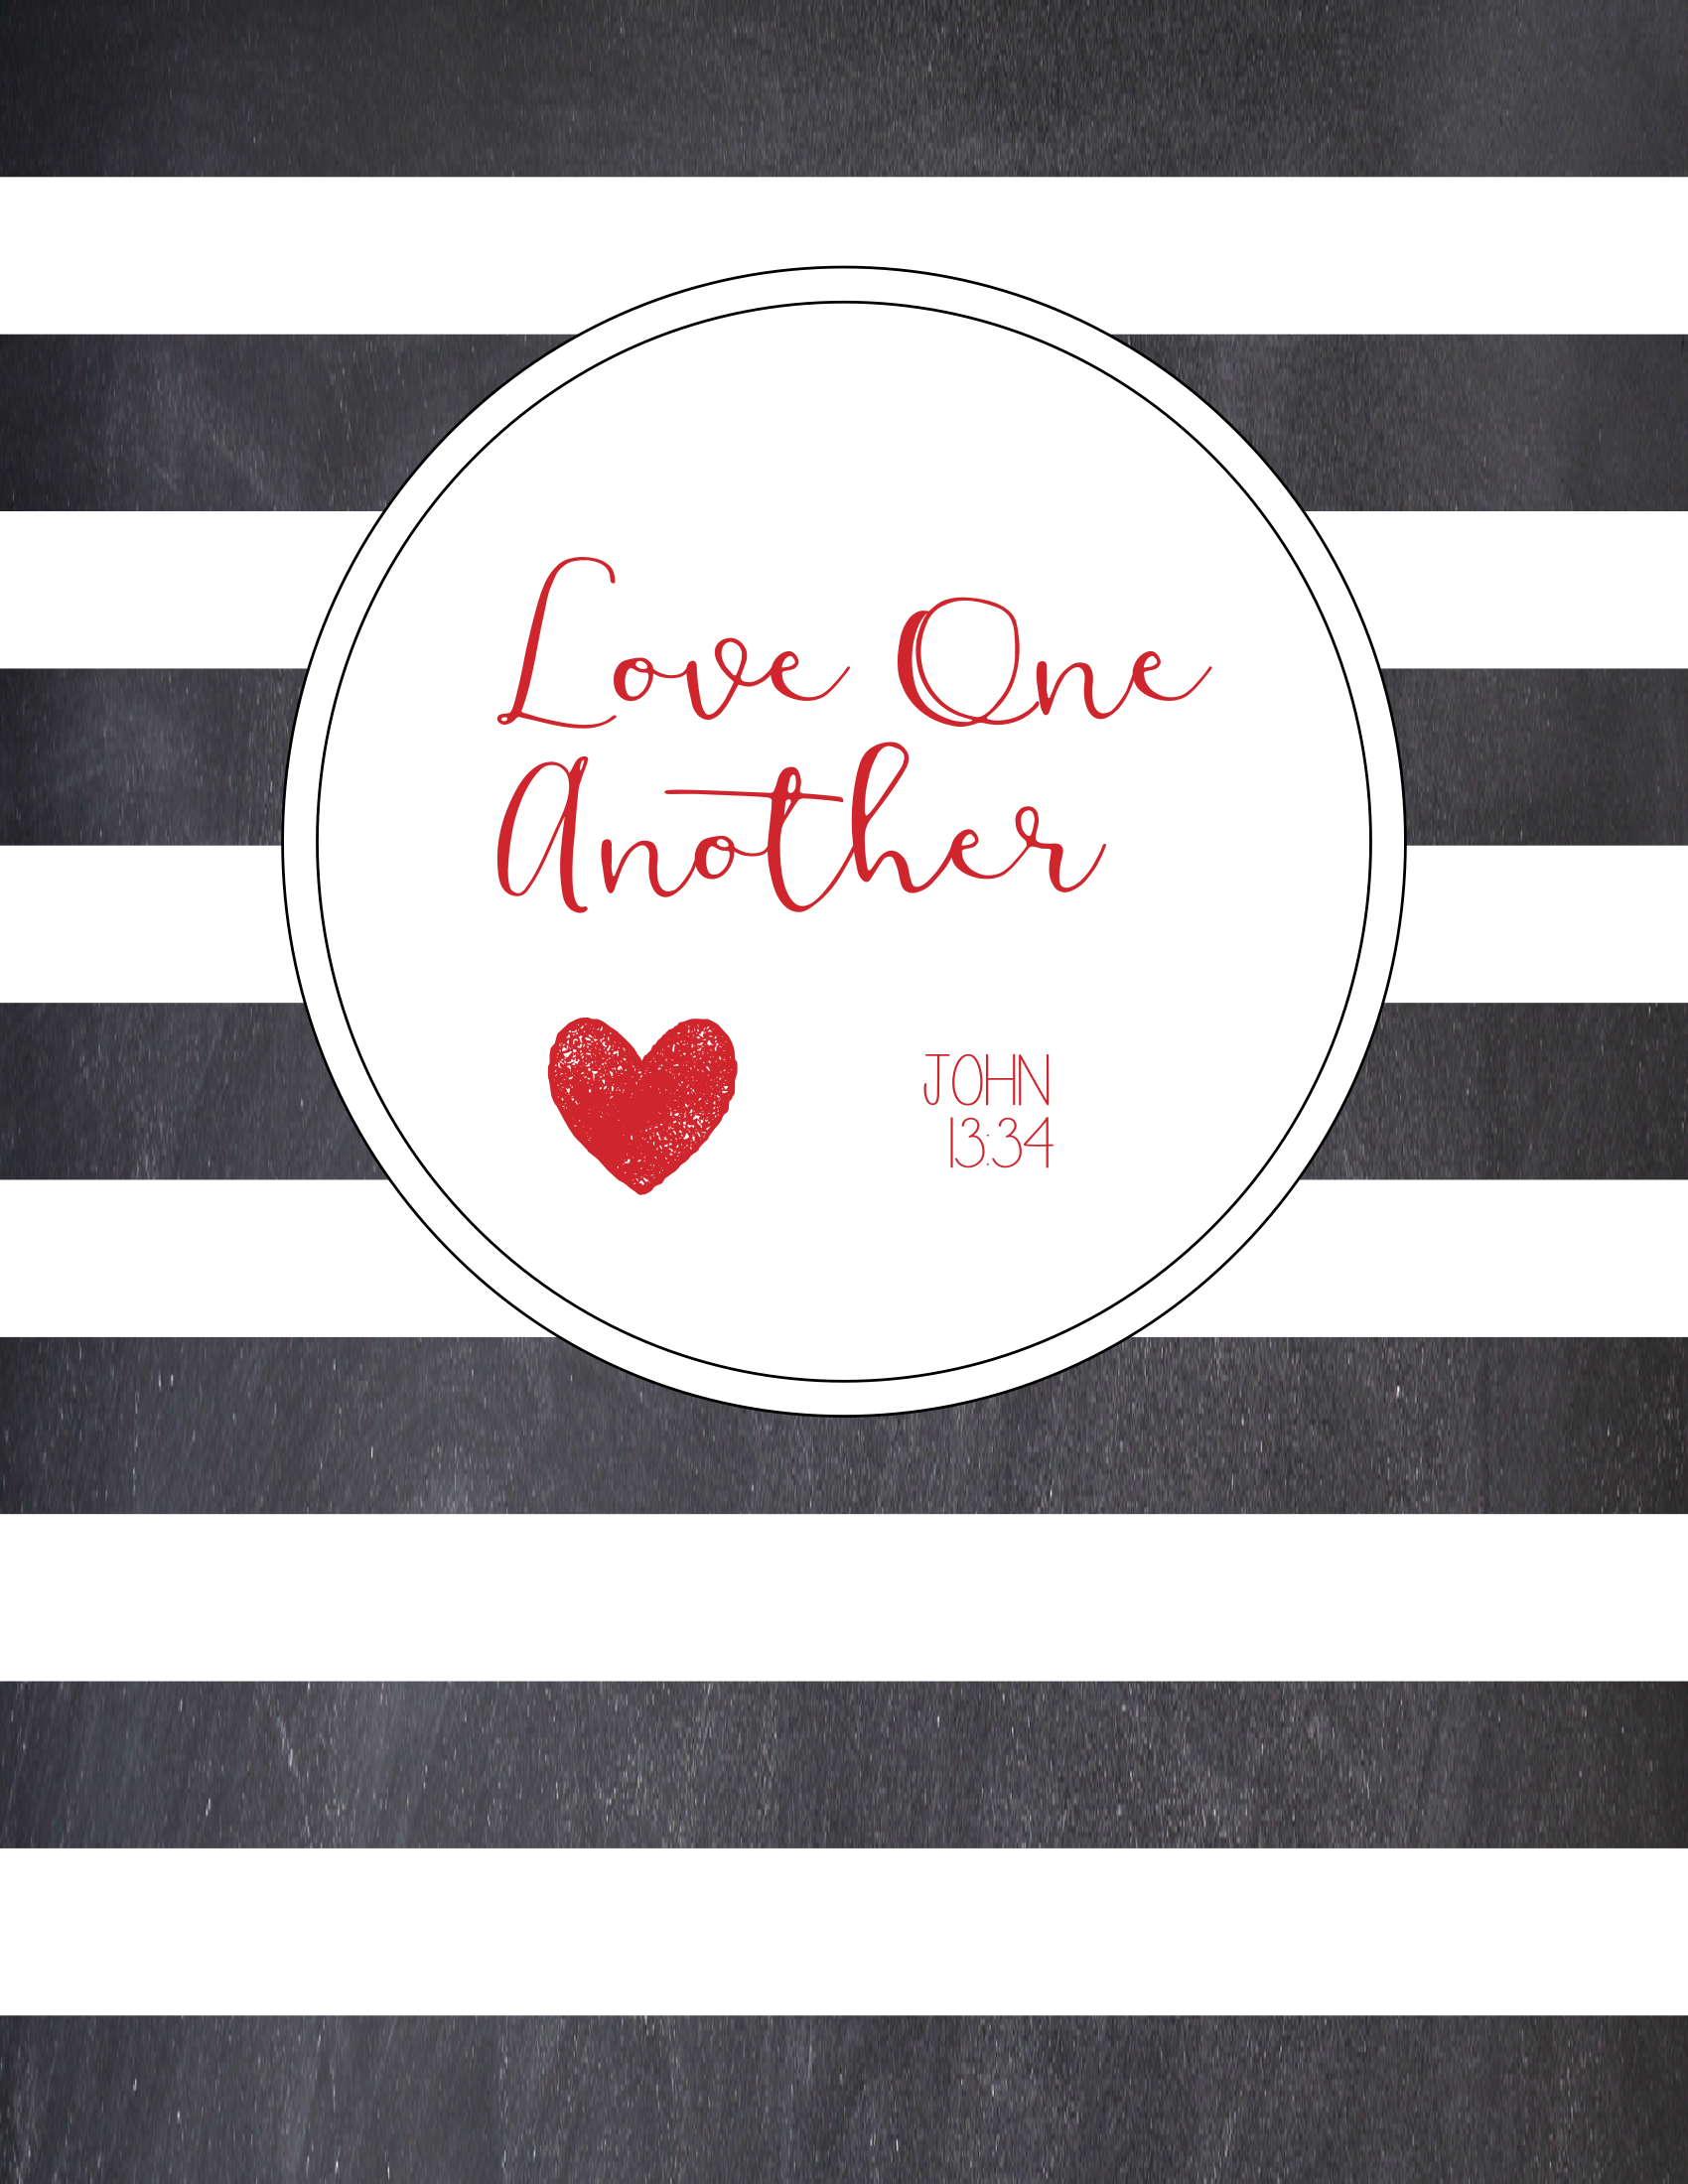 photo about Love One Another Printable named Free of charge Printable \